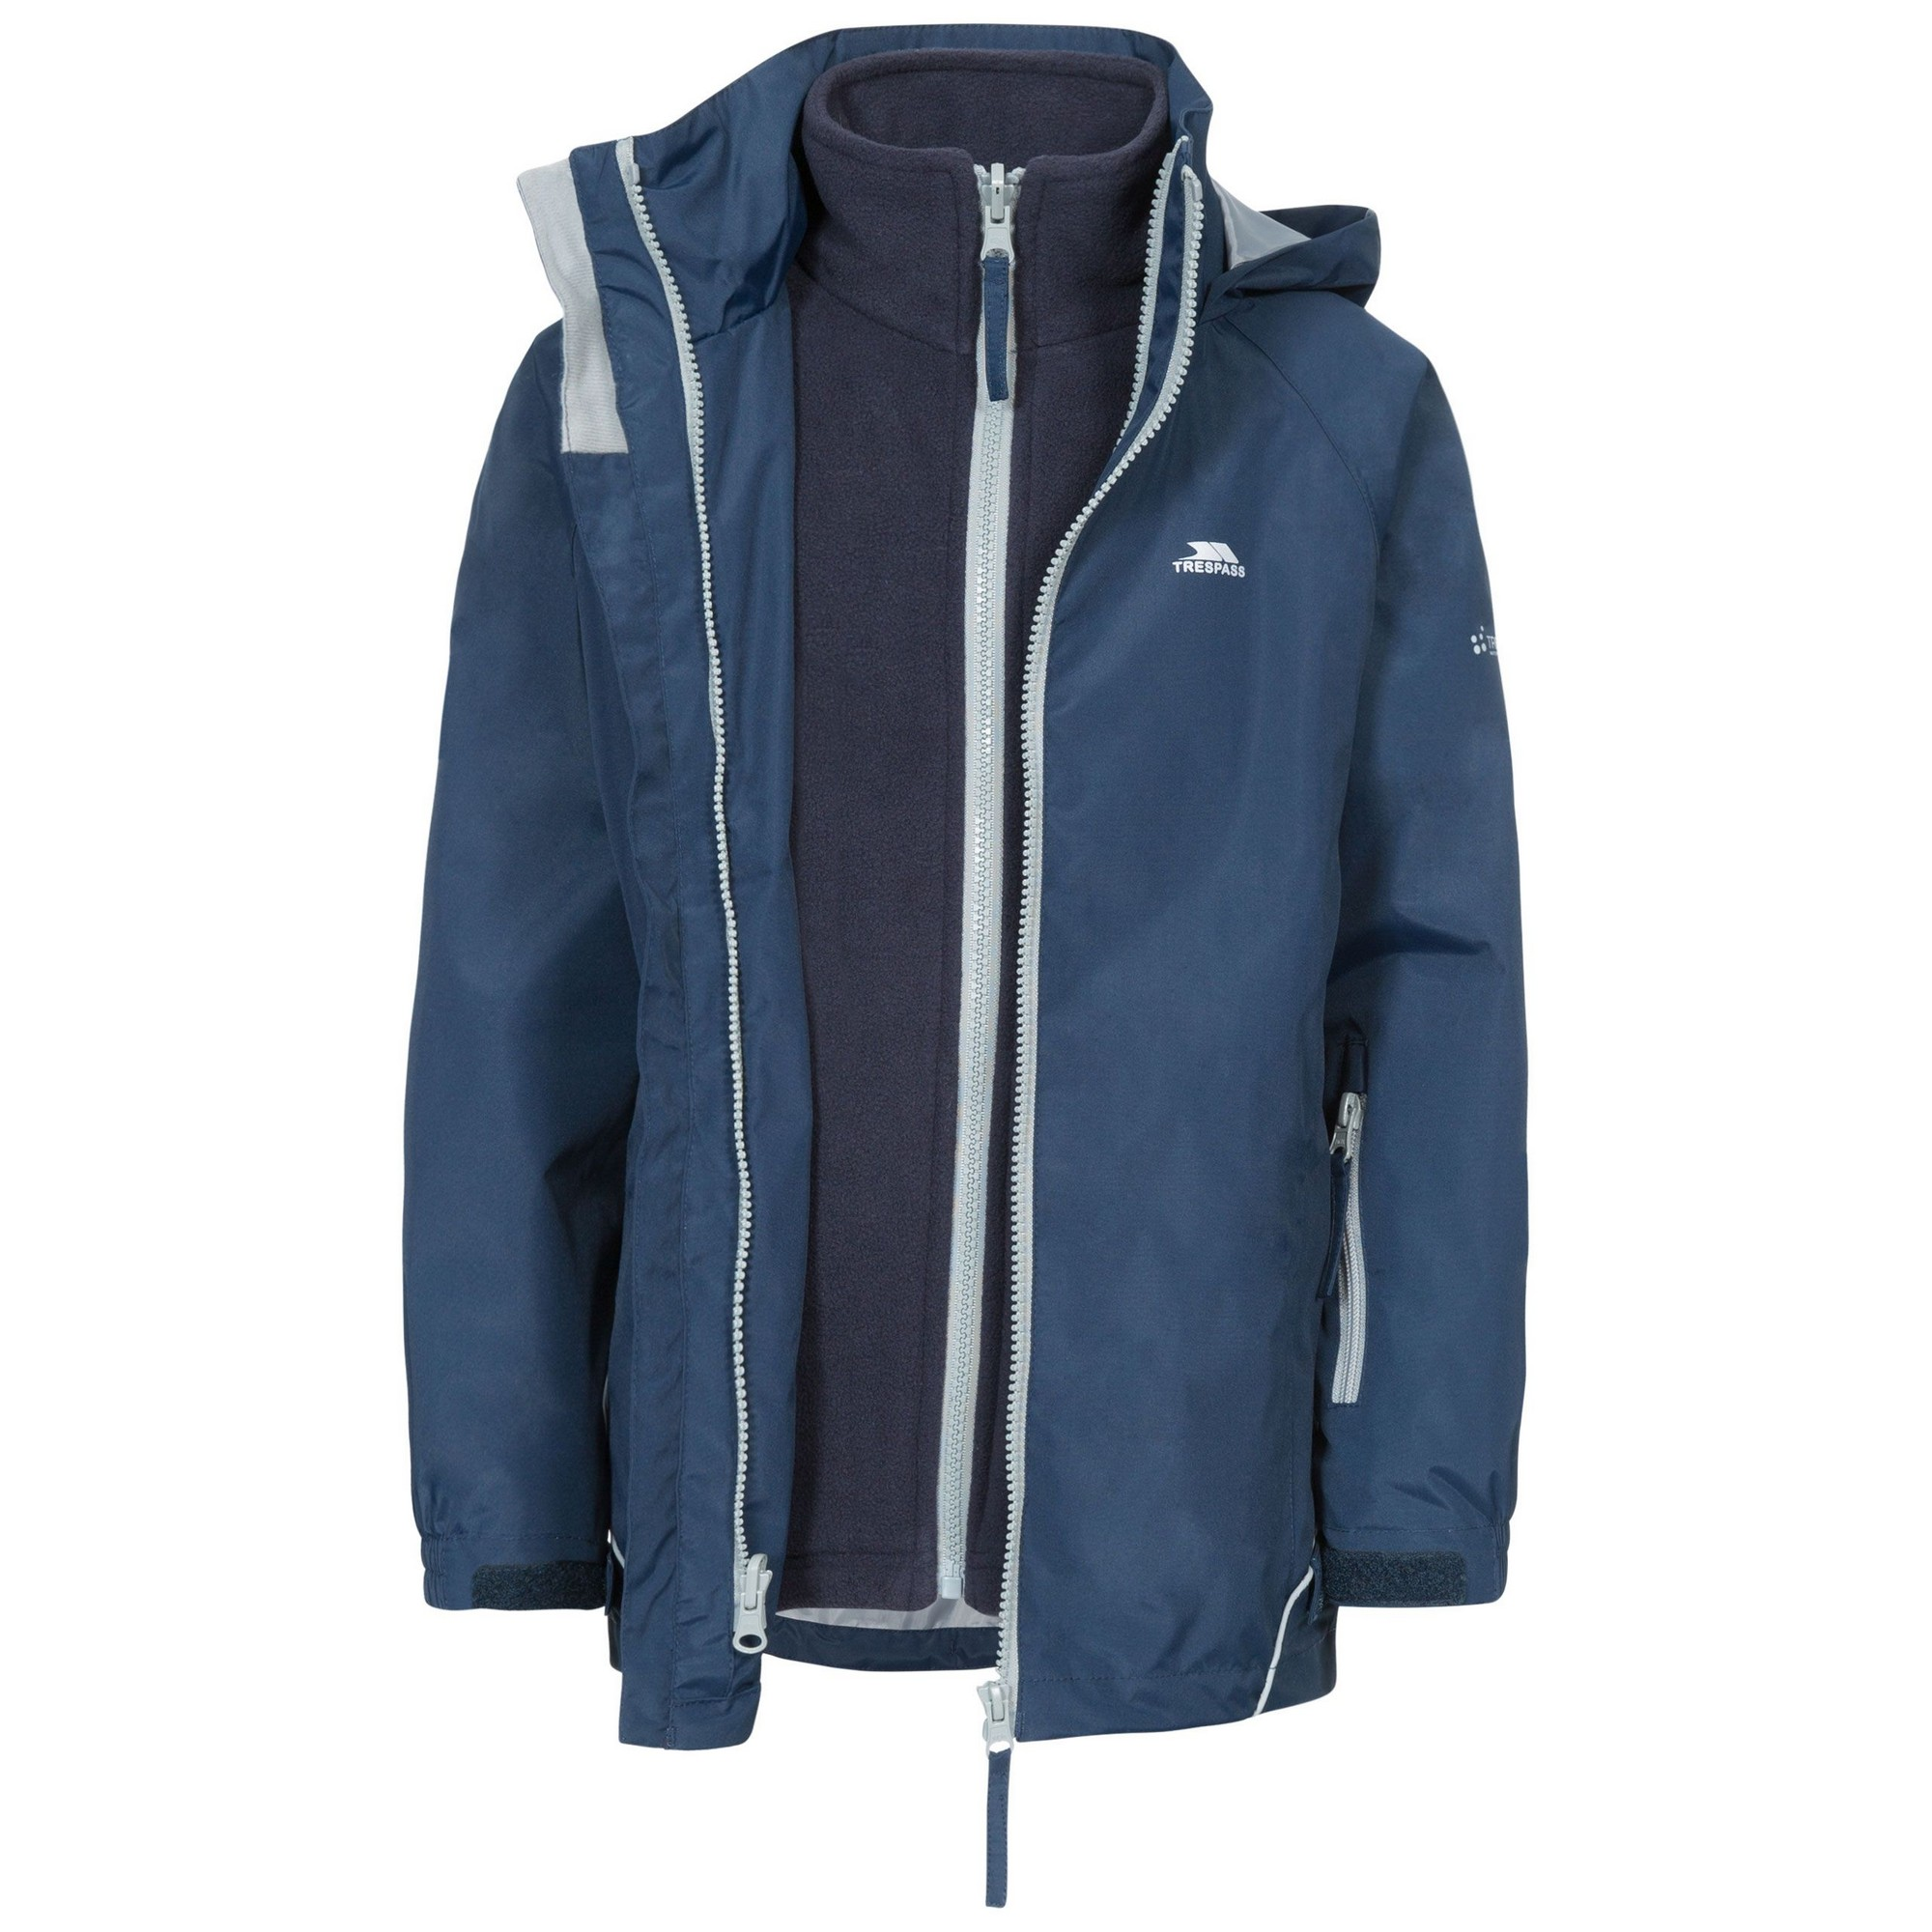 Trespass Childrens/Kids Rockcliff Waterproof 3-In-1 Jacket (7-8 Years) (Navy)